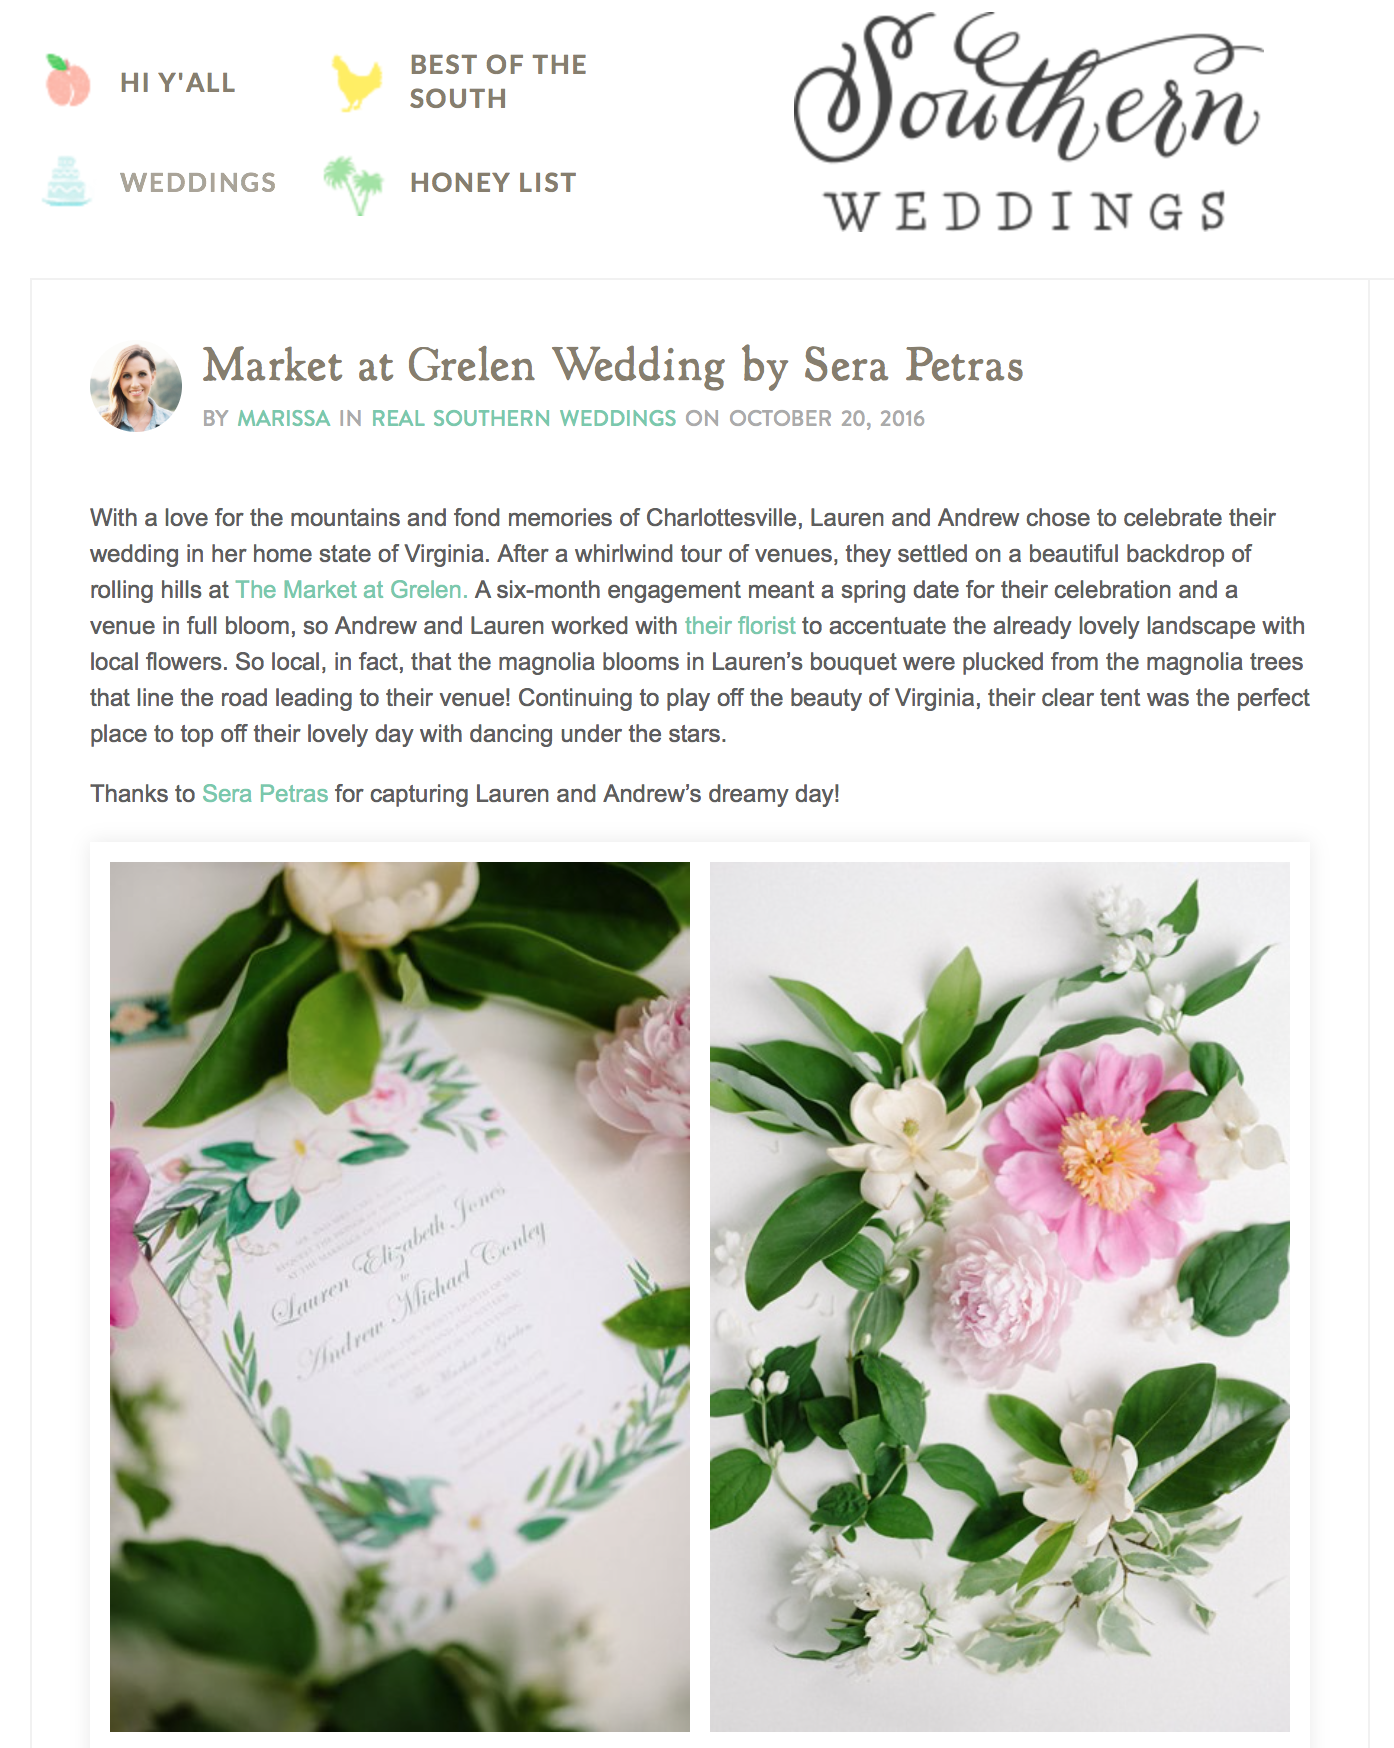 Southern Wedding The Market at Grelen Spring Wedding Feature